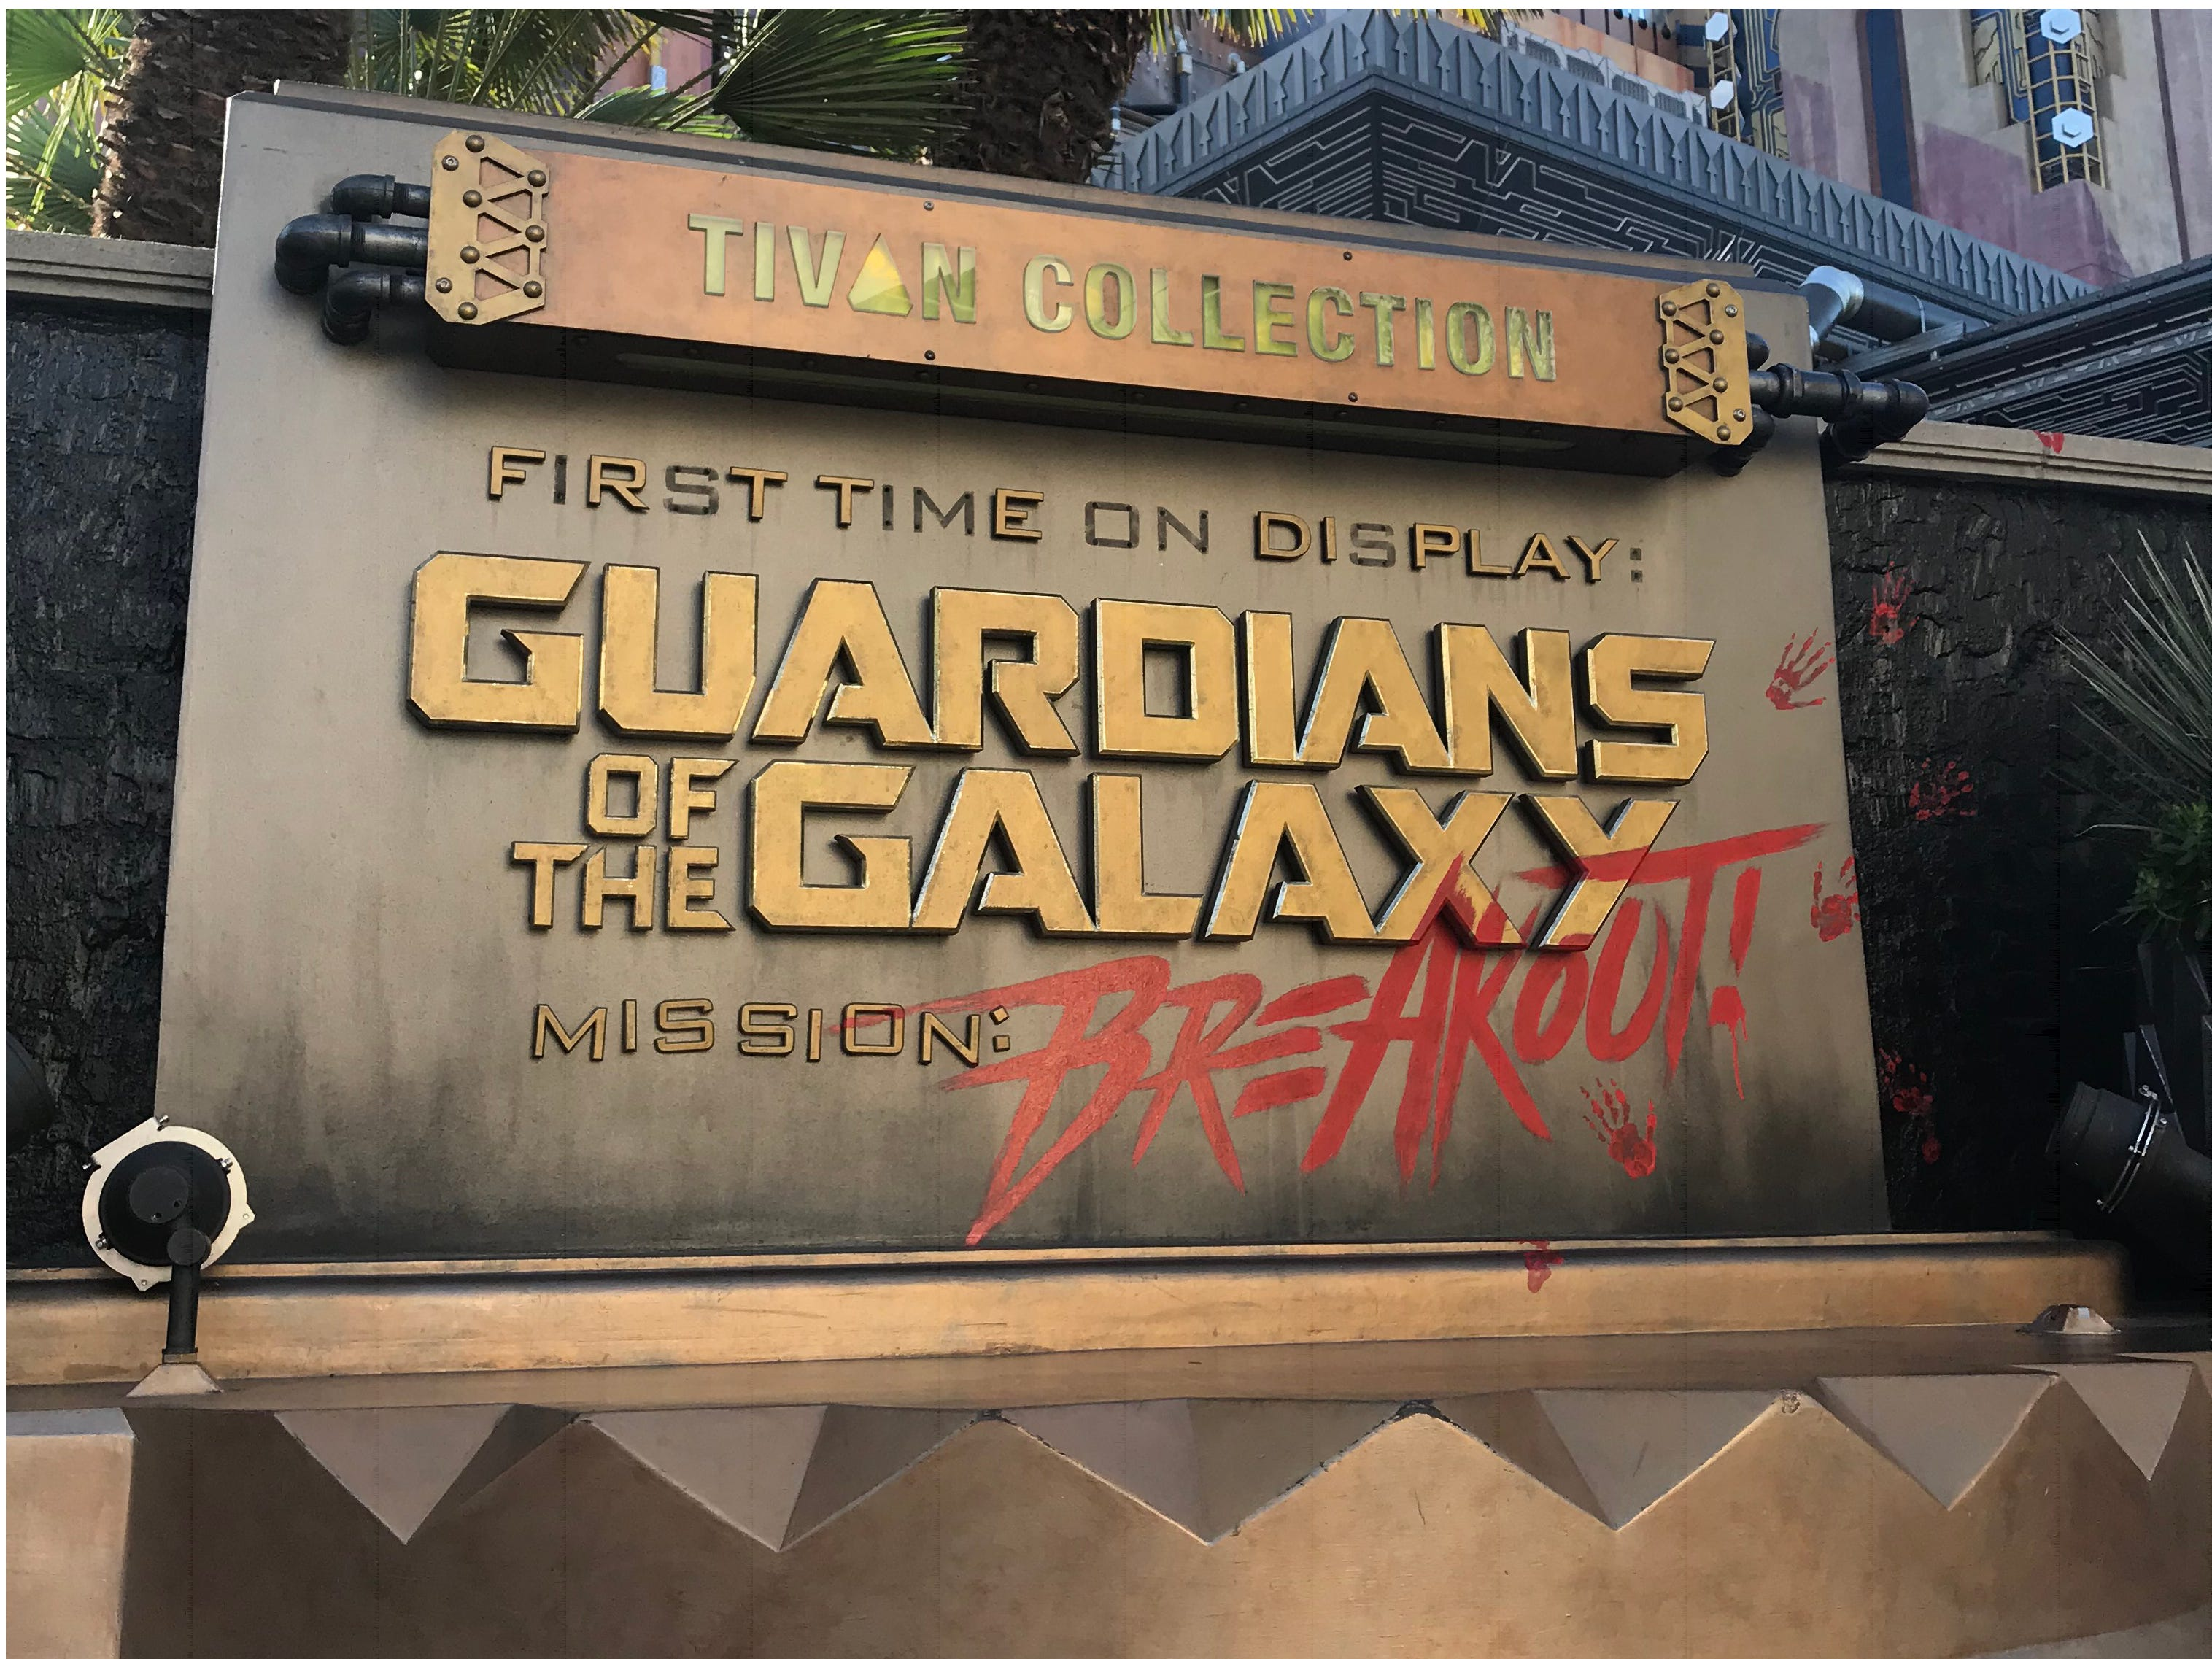 """Slide 9 of 23: Riders can experience up to six different ride sequences on Guardians of the Galaxy – Mission: BREAKOUT! — each of which has its own synchronized song including """"Hit Me With Your Best Shot"""" by Pat Benatar, """"Give Up the Funk"""" by Parliament, and """"I Want You Back"""" by The Jackson 5.Guardians of the Galaxy – Mission: BREAKOUT! replaced the beloved Tower of Terror back in 2017, and with the change of theme came a change of intended emotions. Instead of feeling fear during the ride's iconic drops, Imagineers sought to inspire laughter and giddiness."""